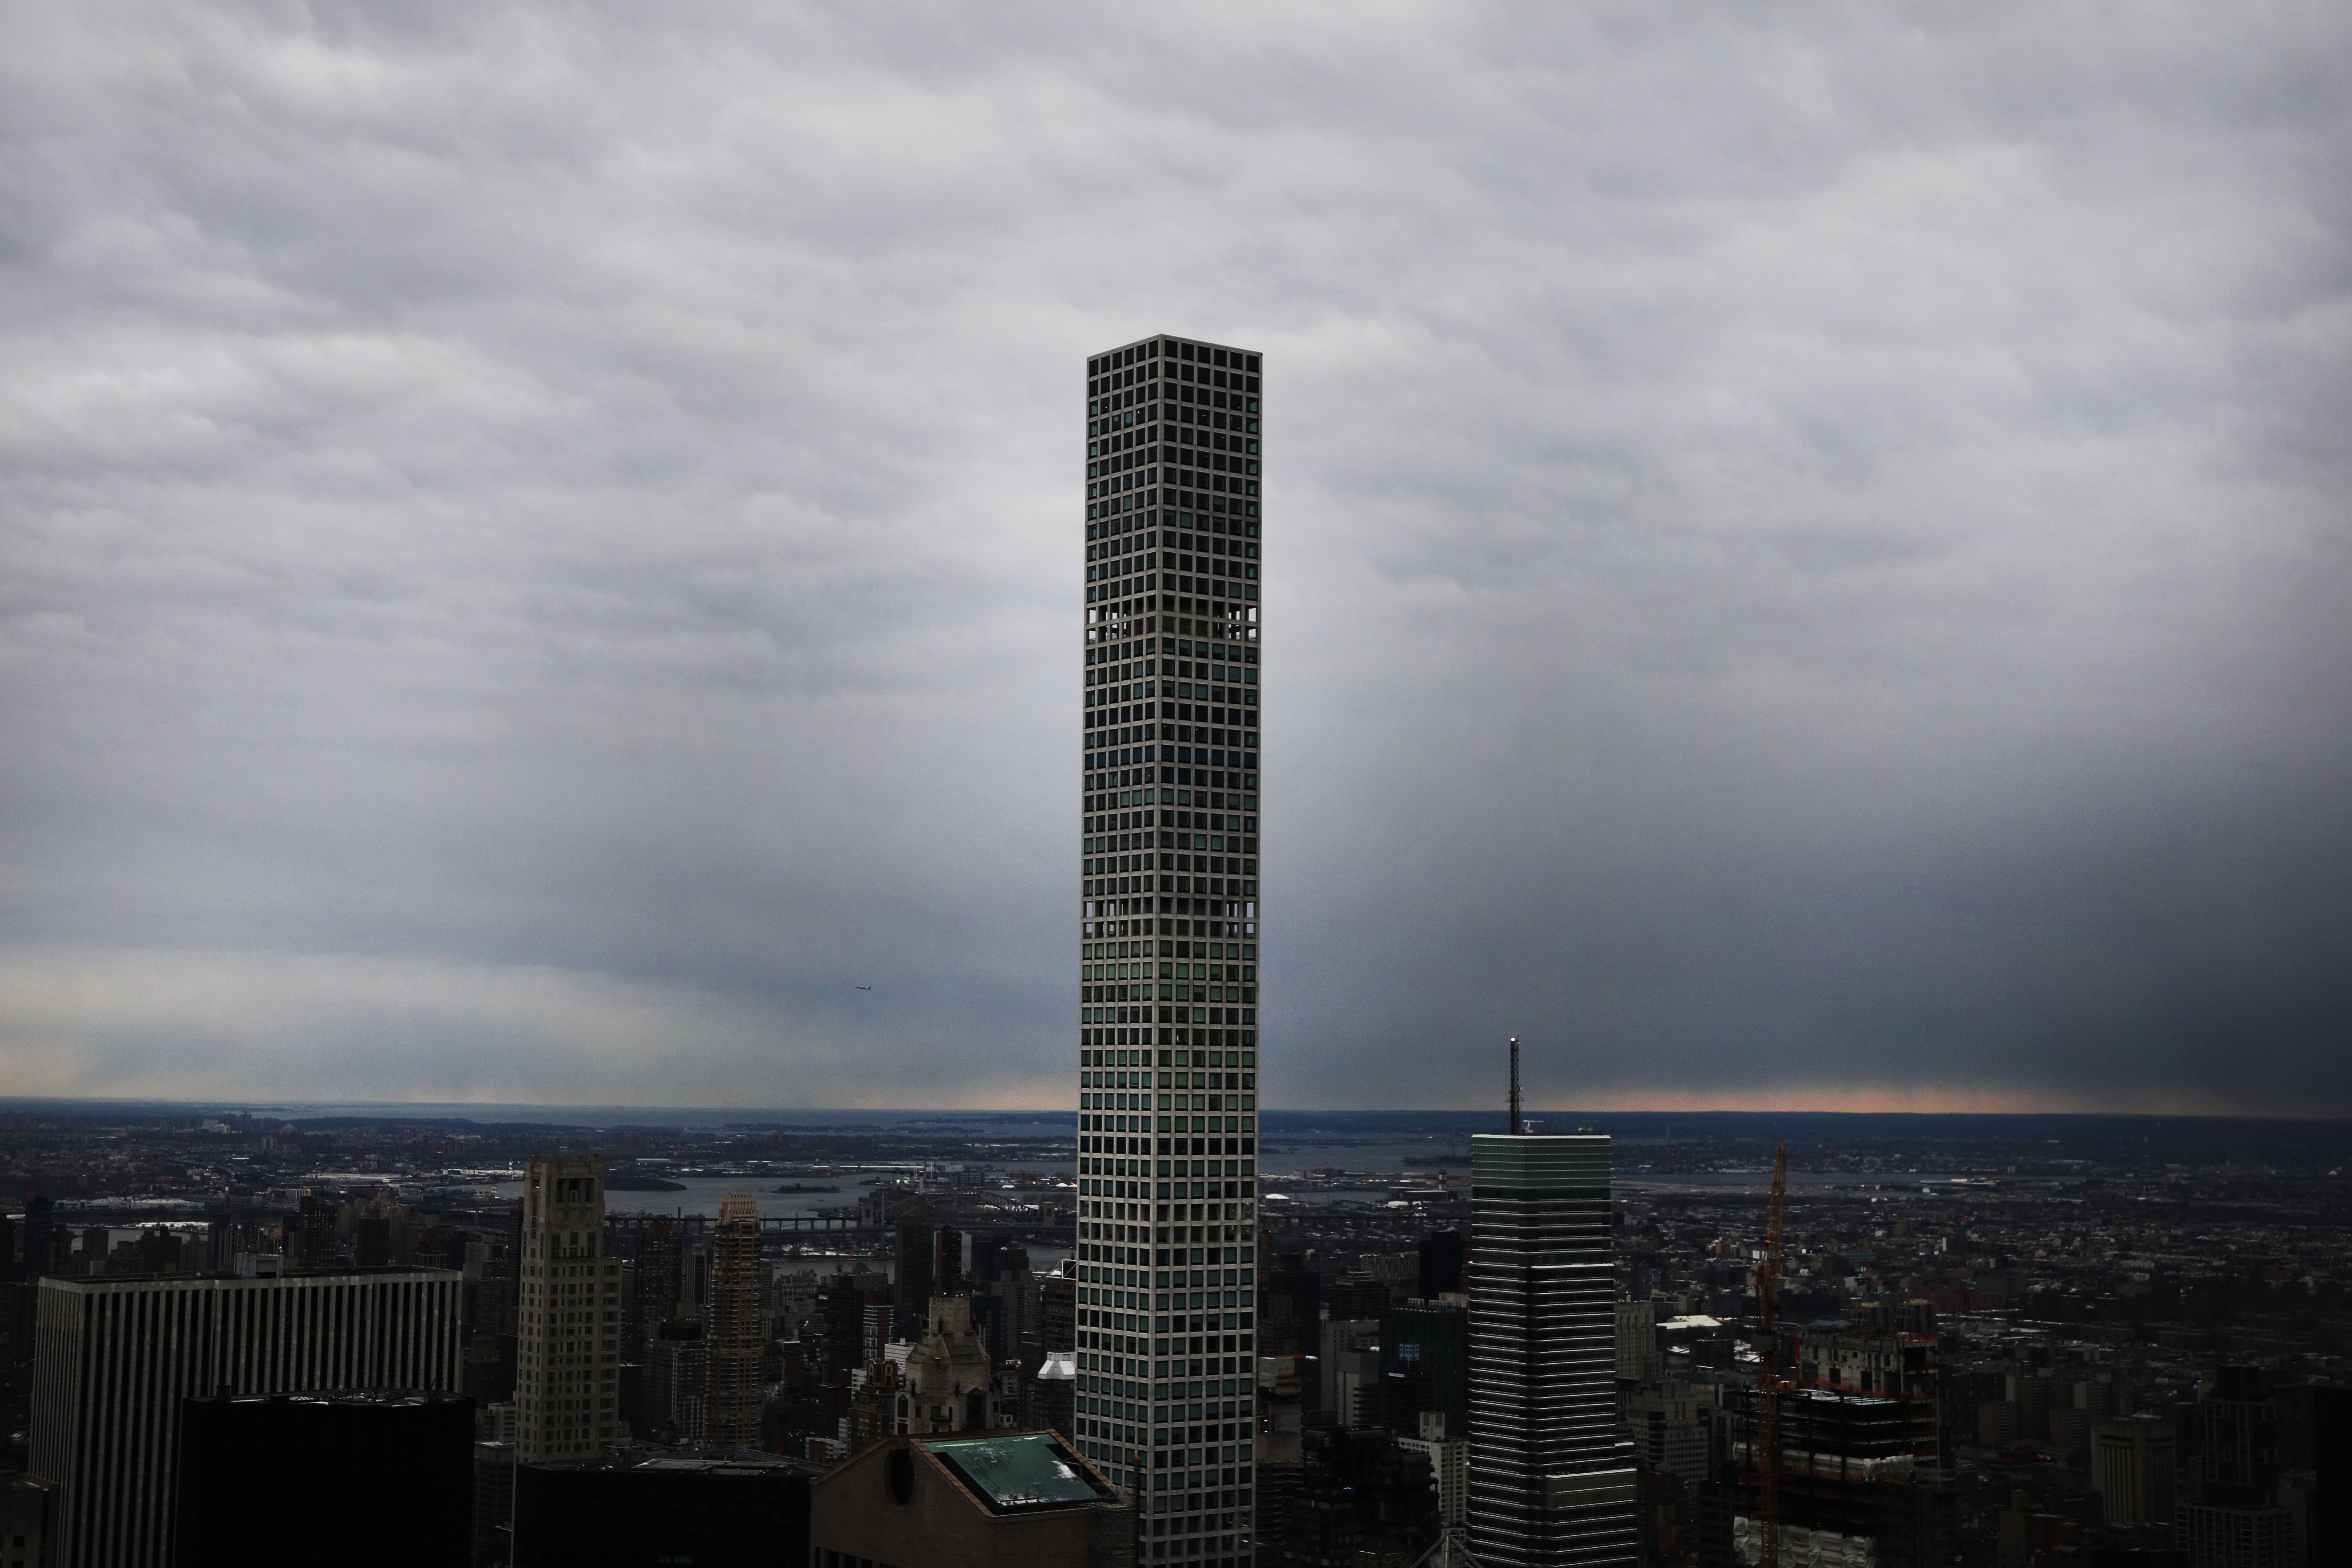 Tall Thin Skyscrapers Change Architectural Skyline Of New York